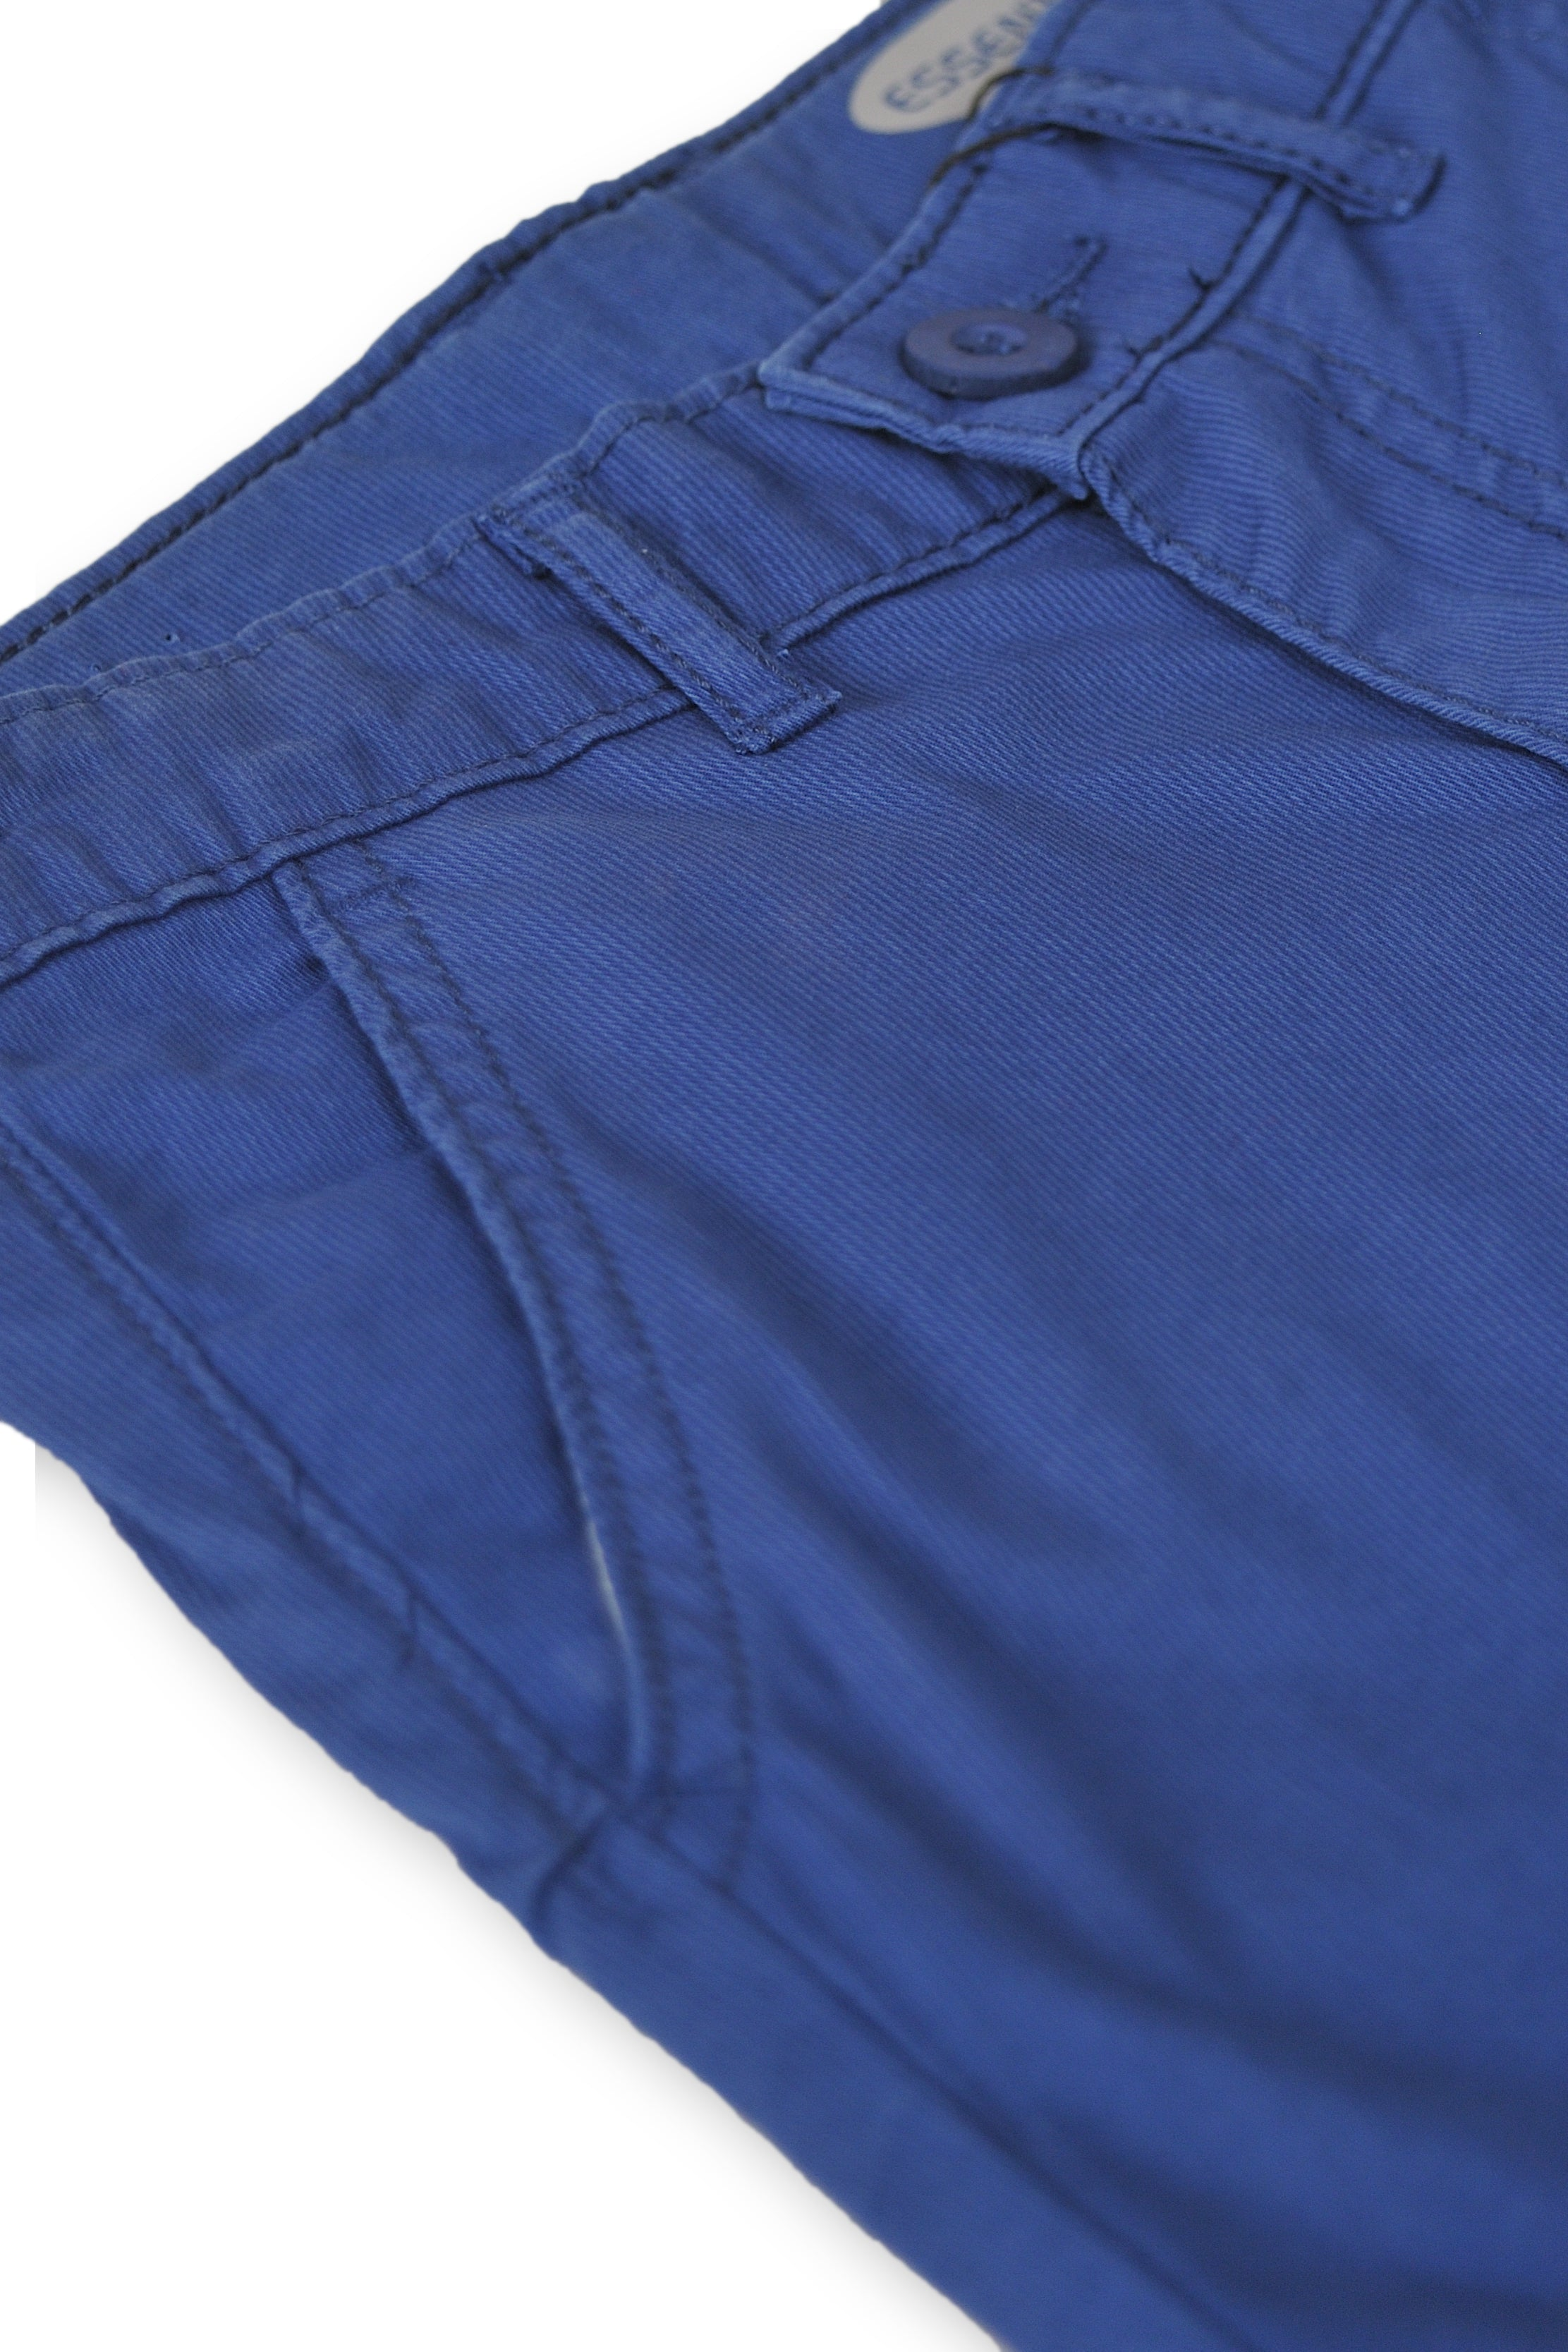 CROSS POCKET BASIC Shorts for Boy's